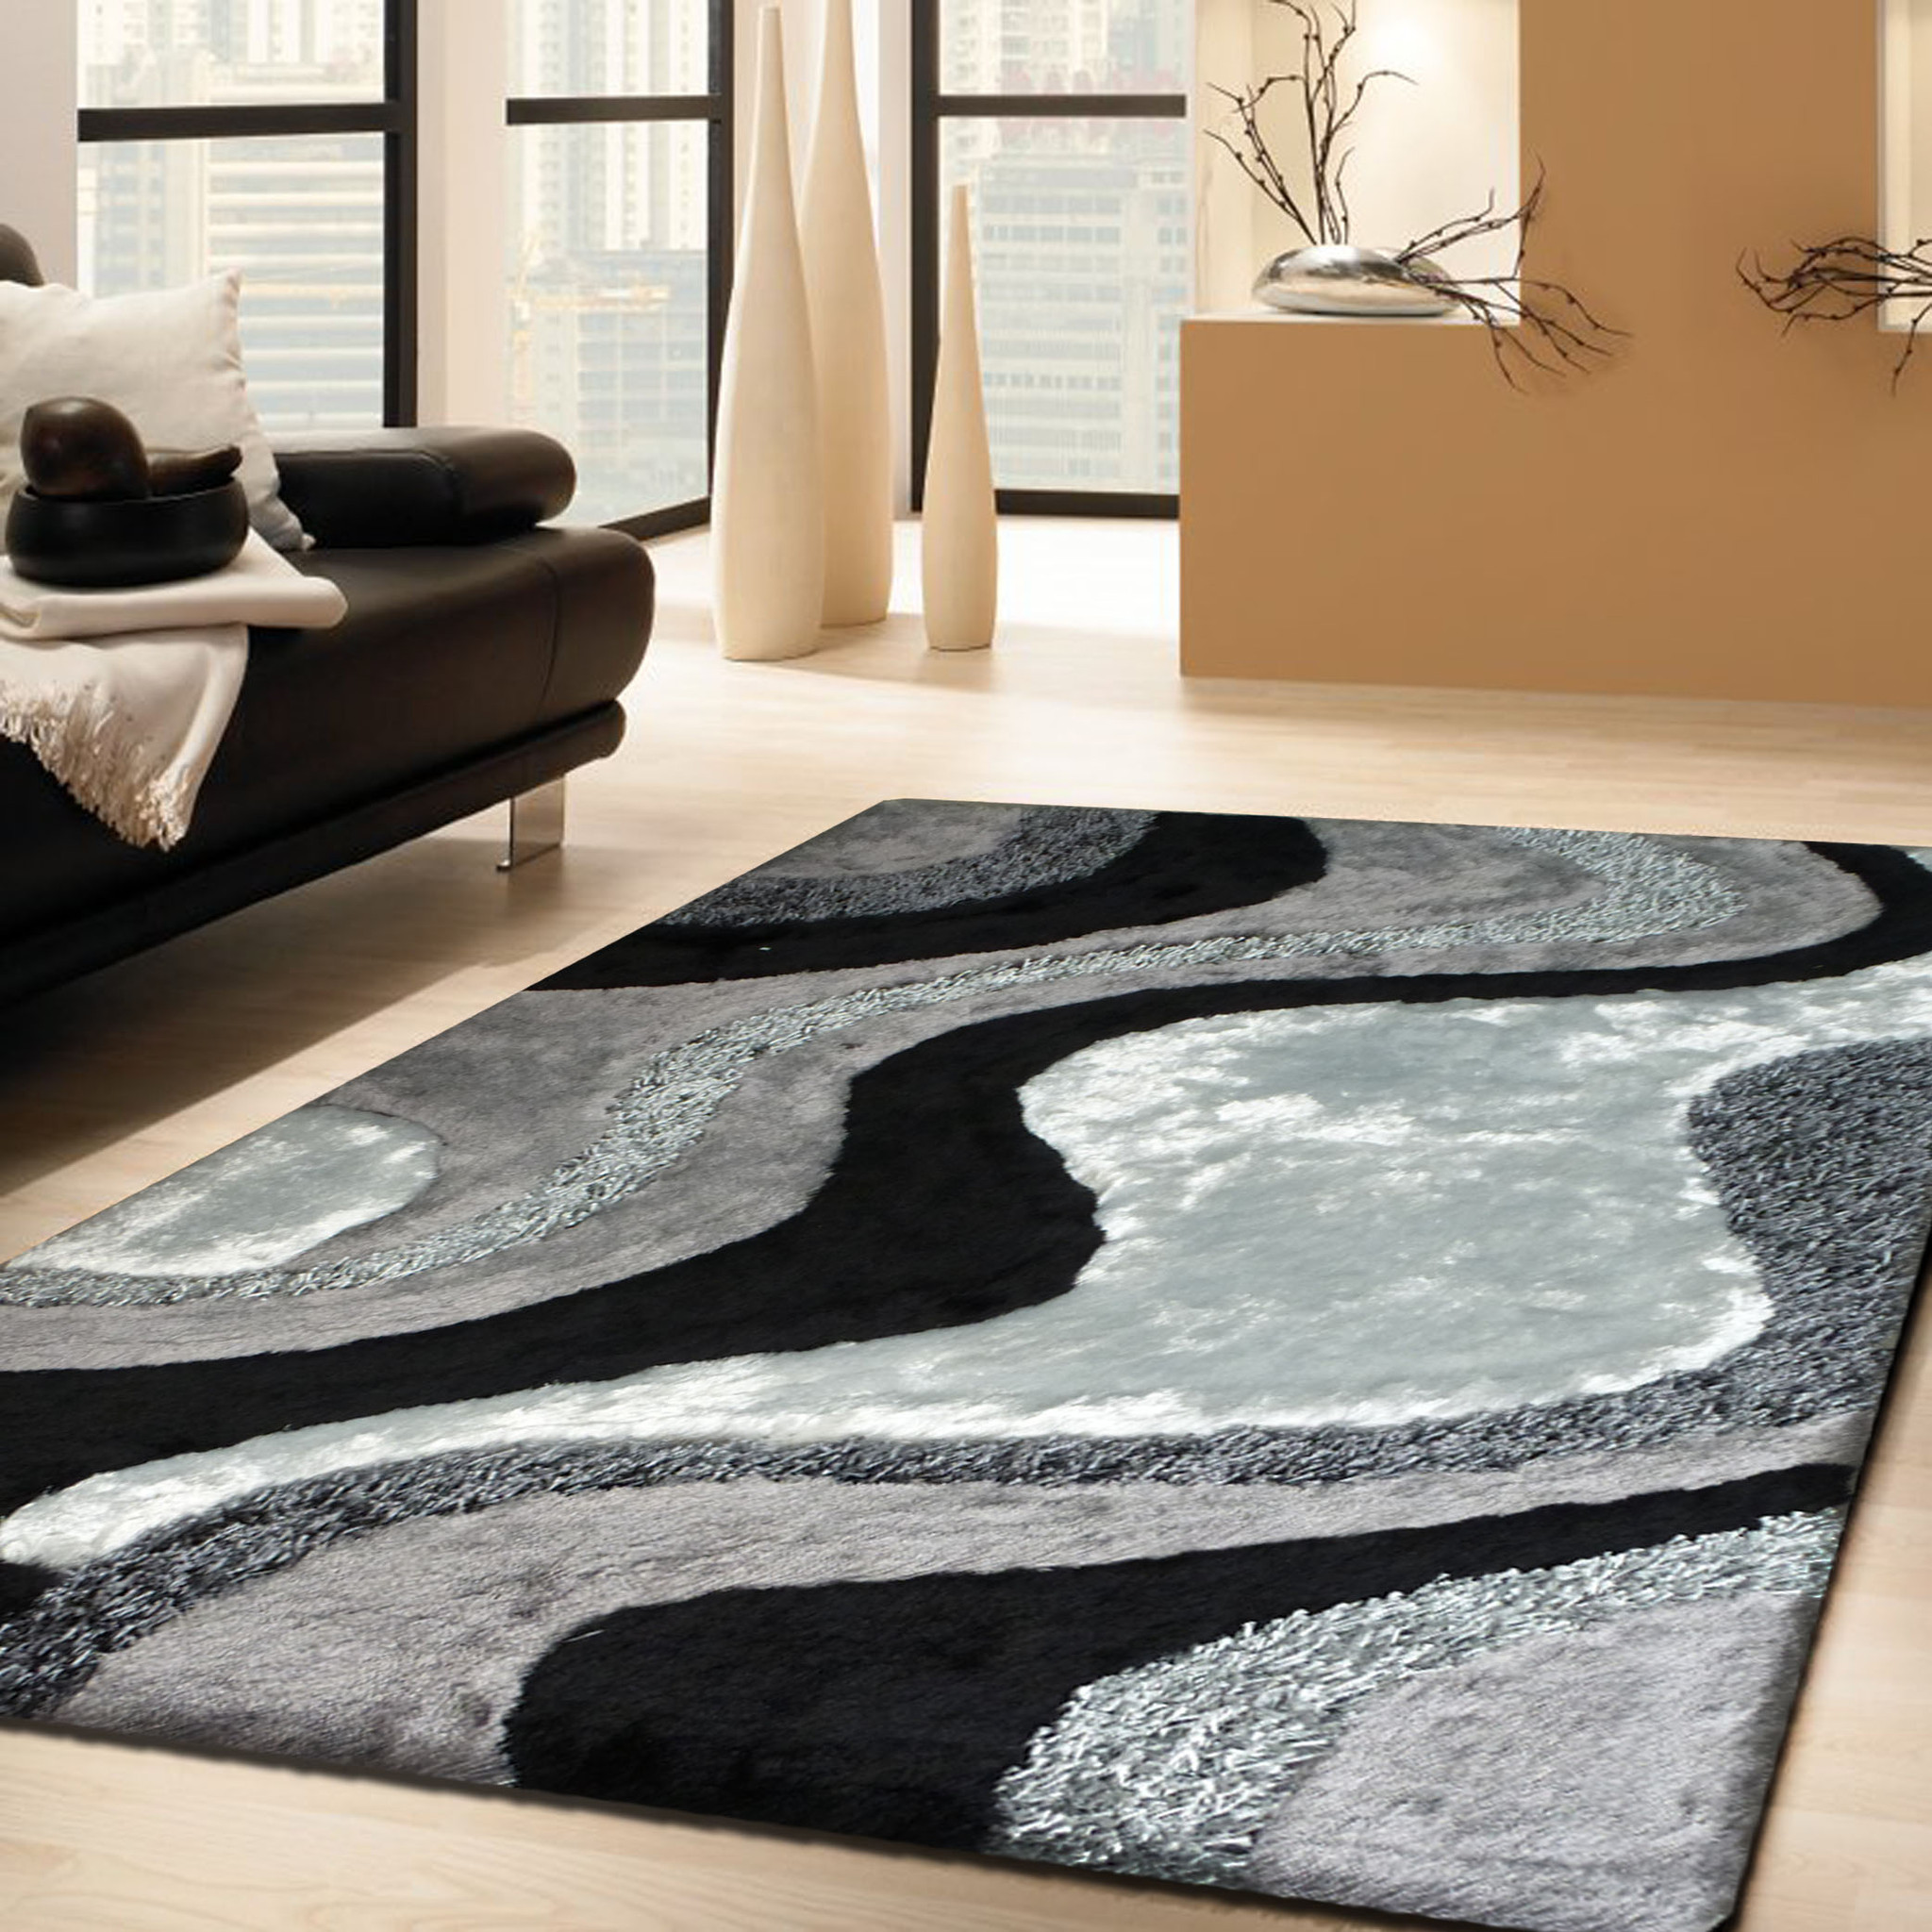 Entrancing Marrakesh Shag Rug | Redoubtable Shag Carpet Rugs